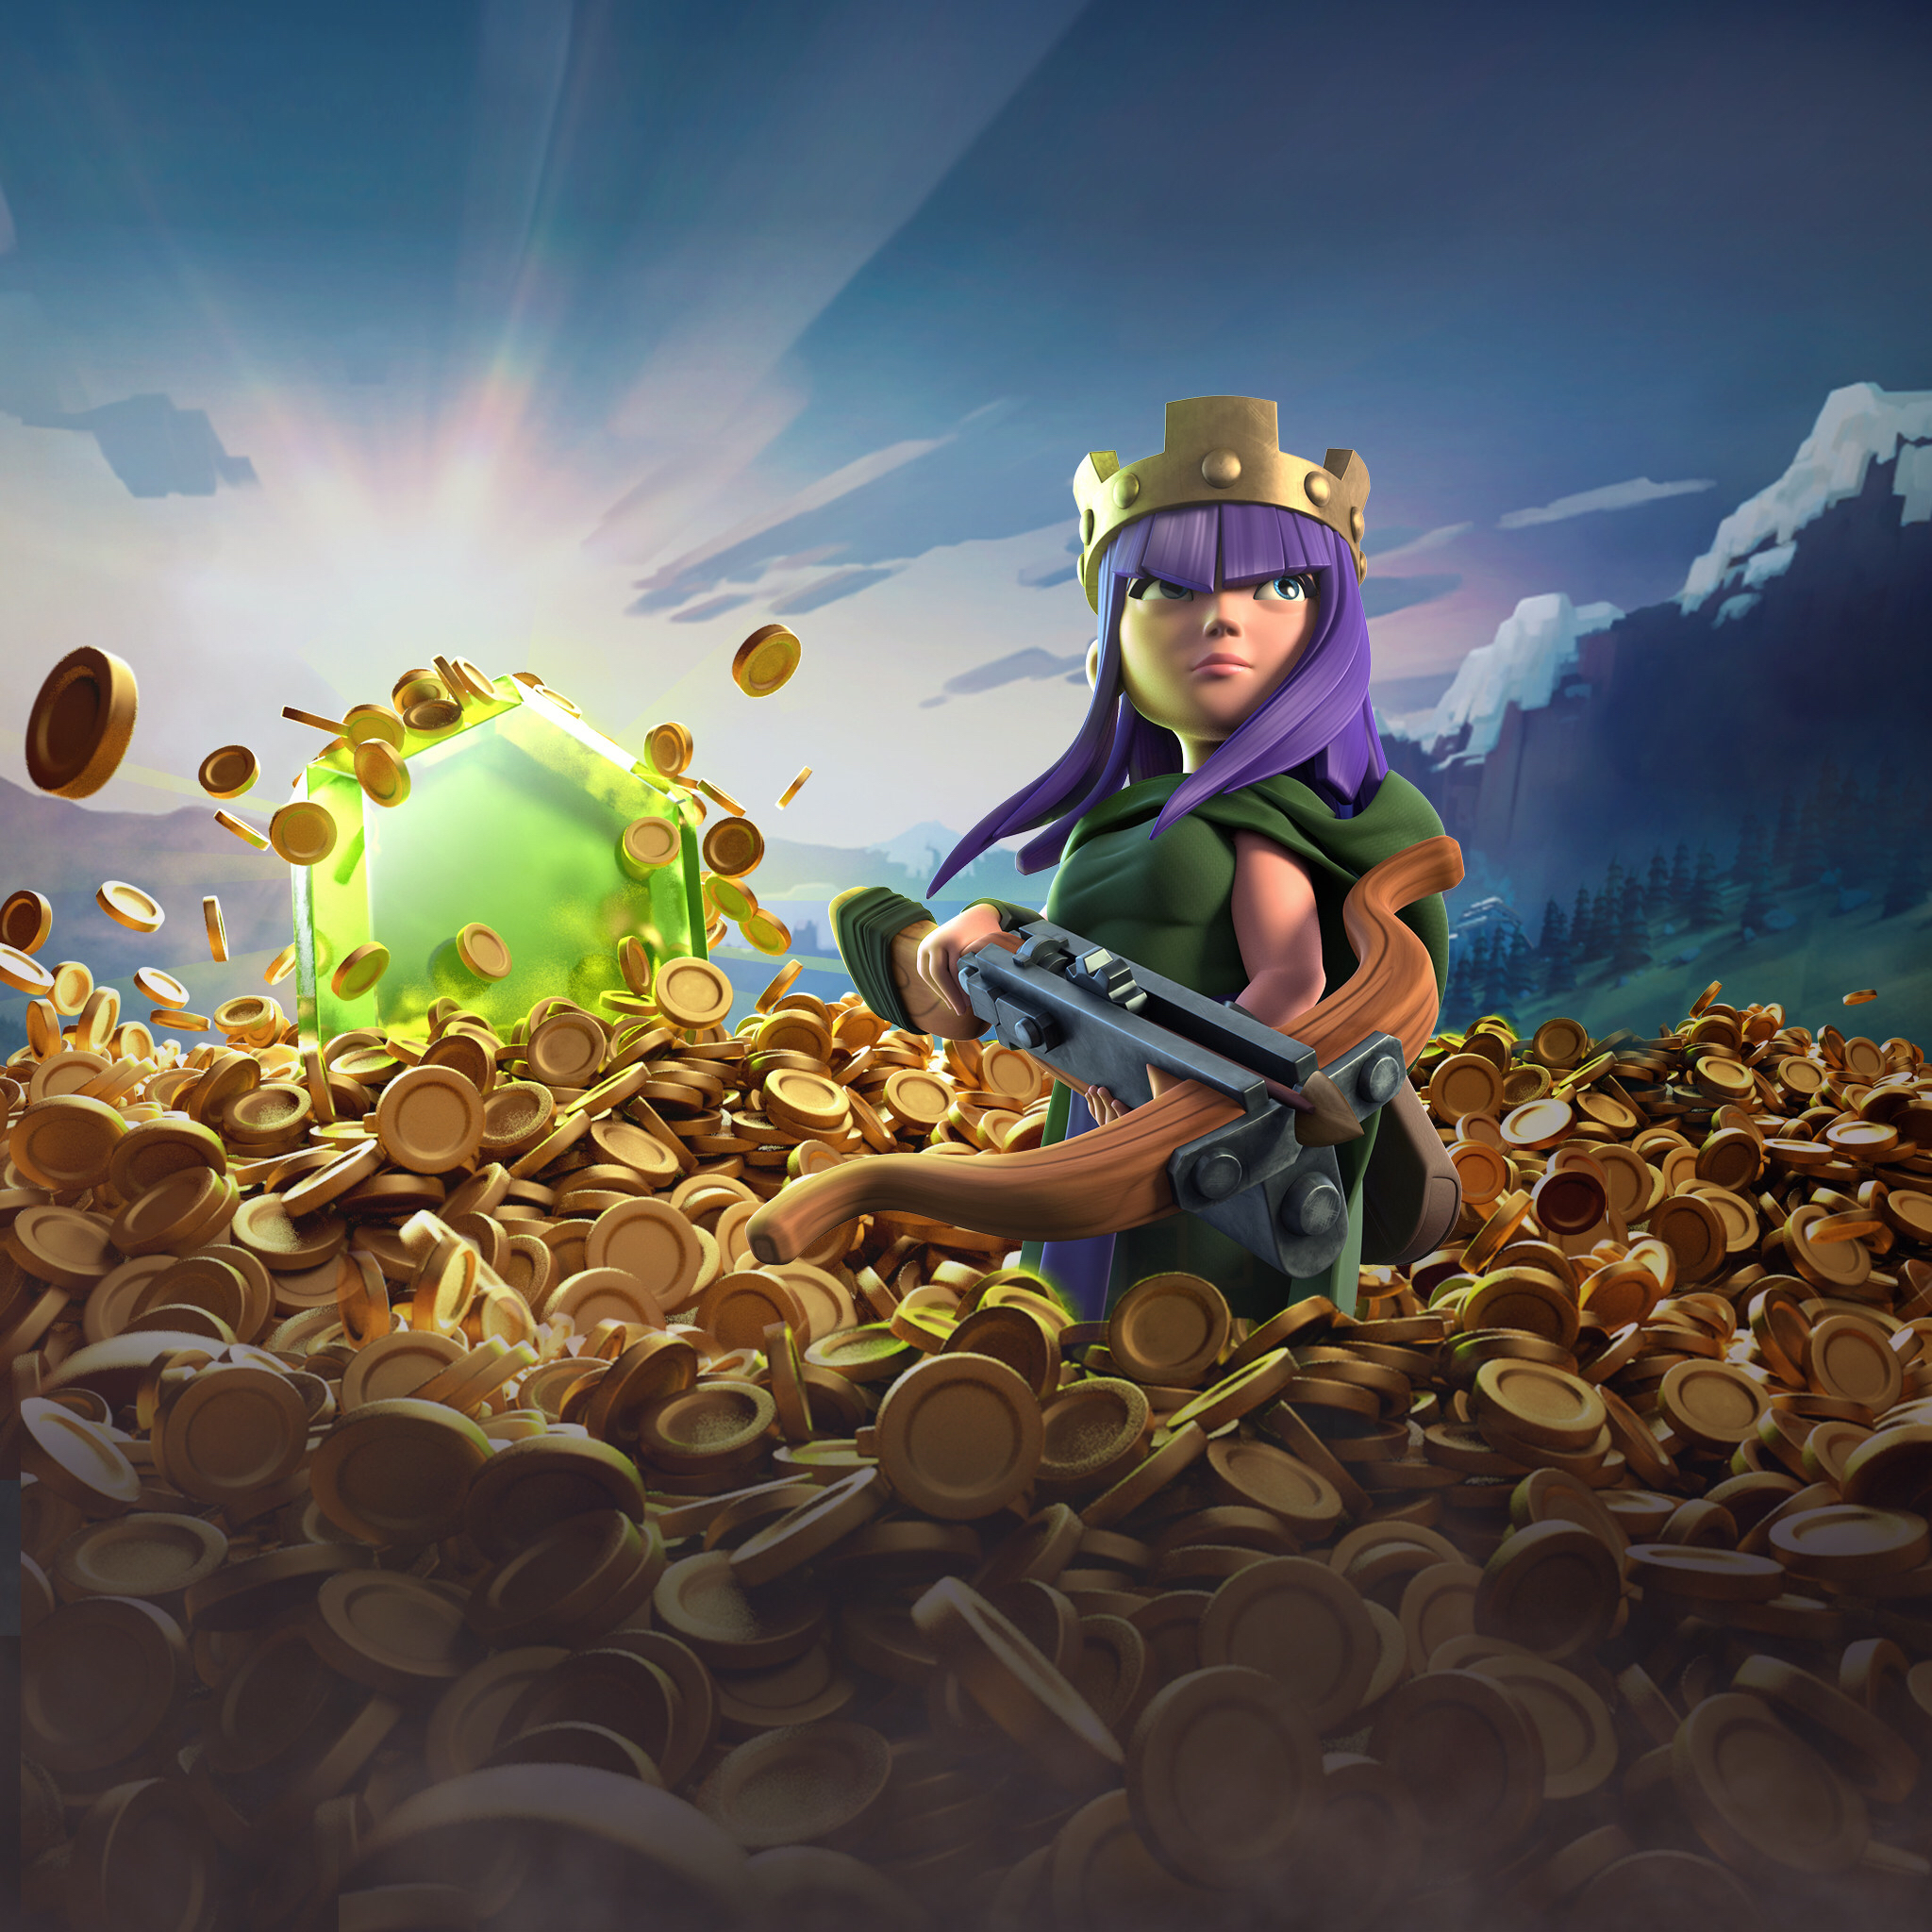 Wallpapers Games: Archer Queen Clash Of Clans, HD Games, 4k Wallpapers